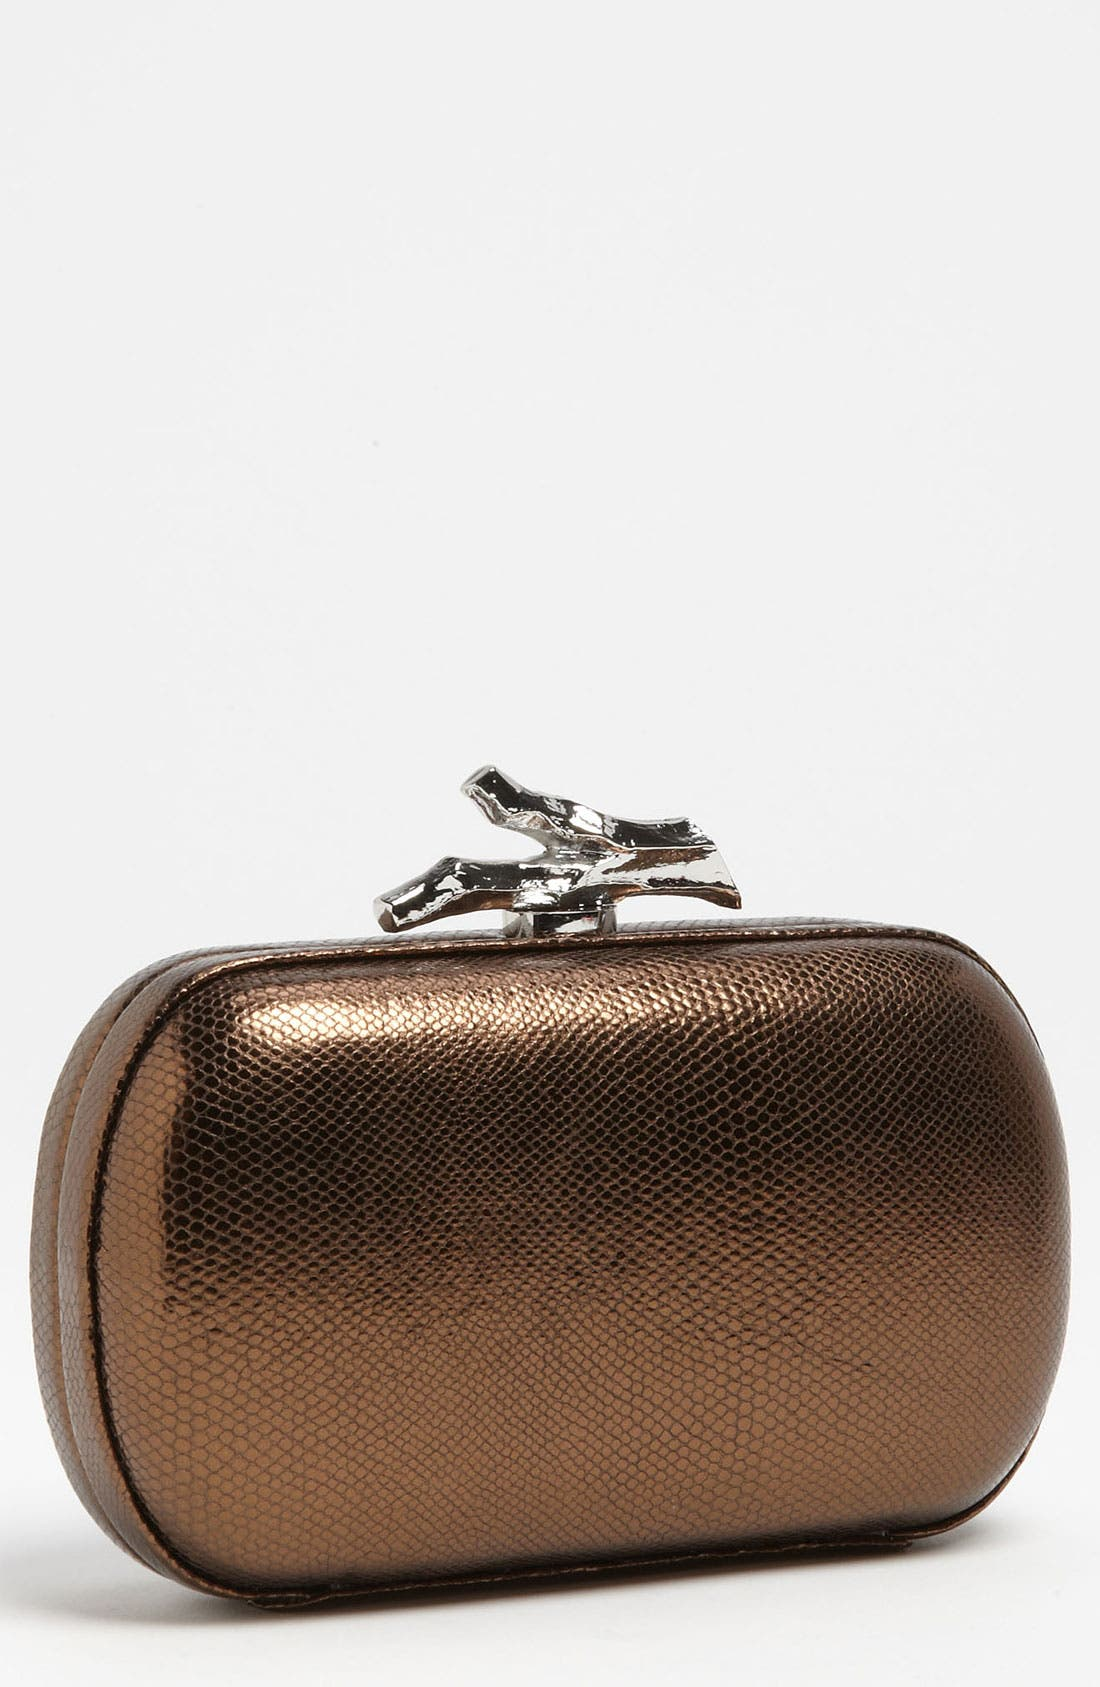 Alternate Image 1 Selected - Diane von Furstenberg 'Lytton - Small' Metallic Leather Clutch